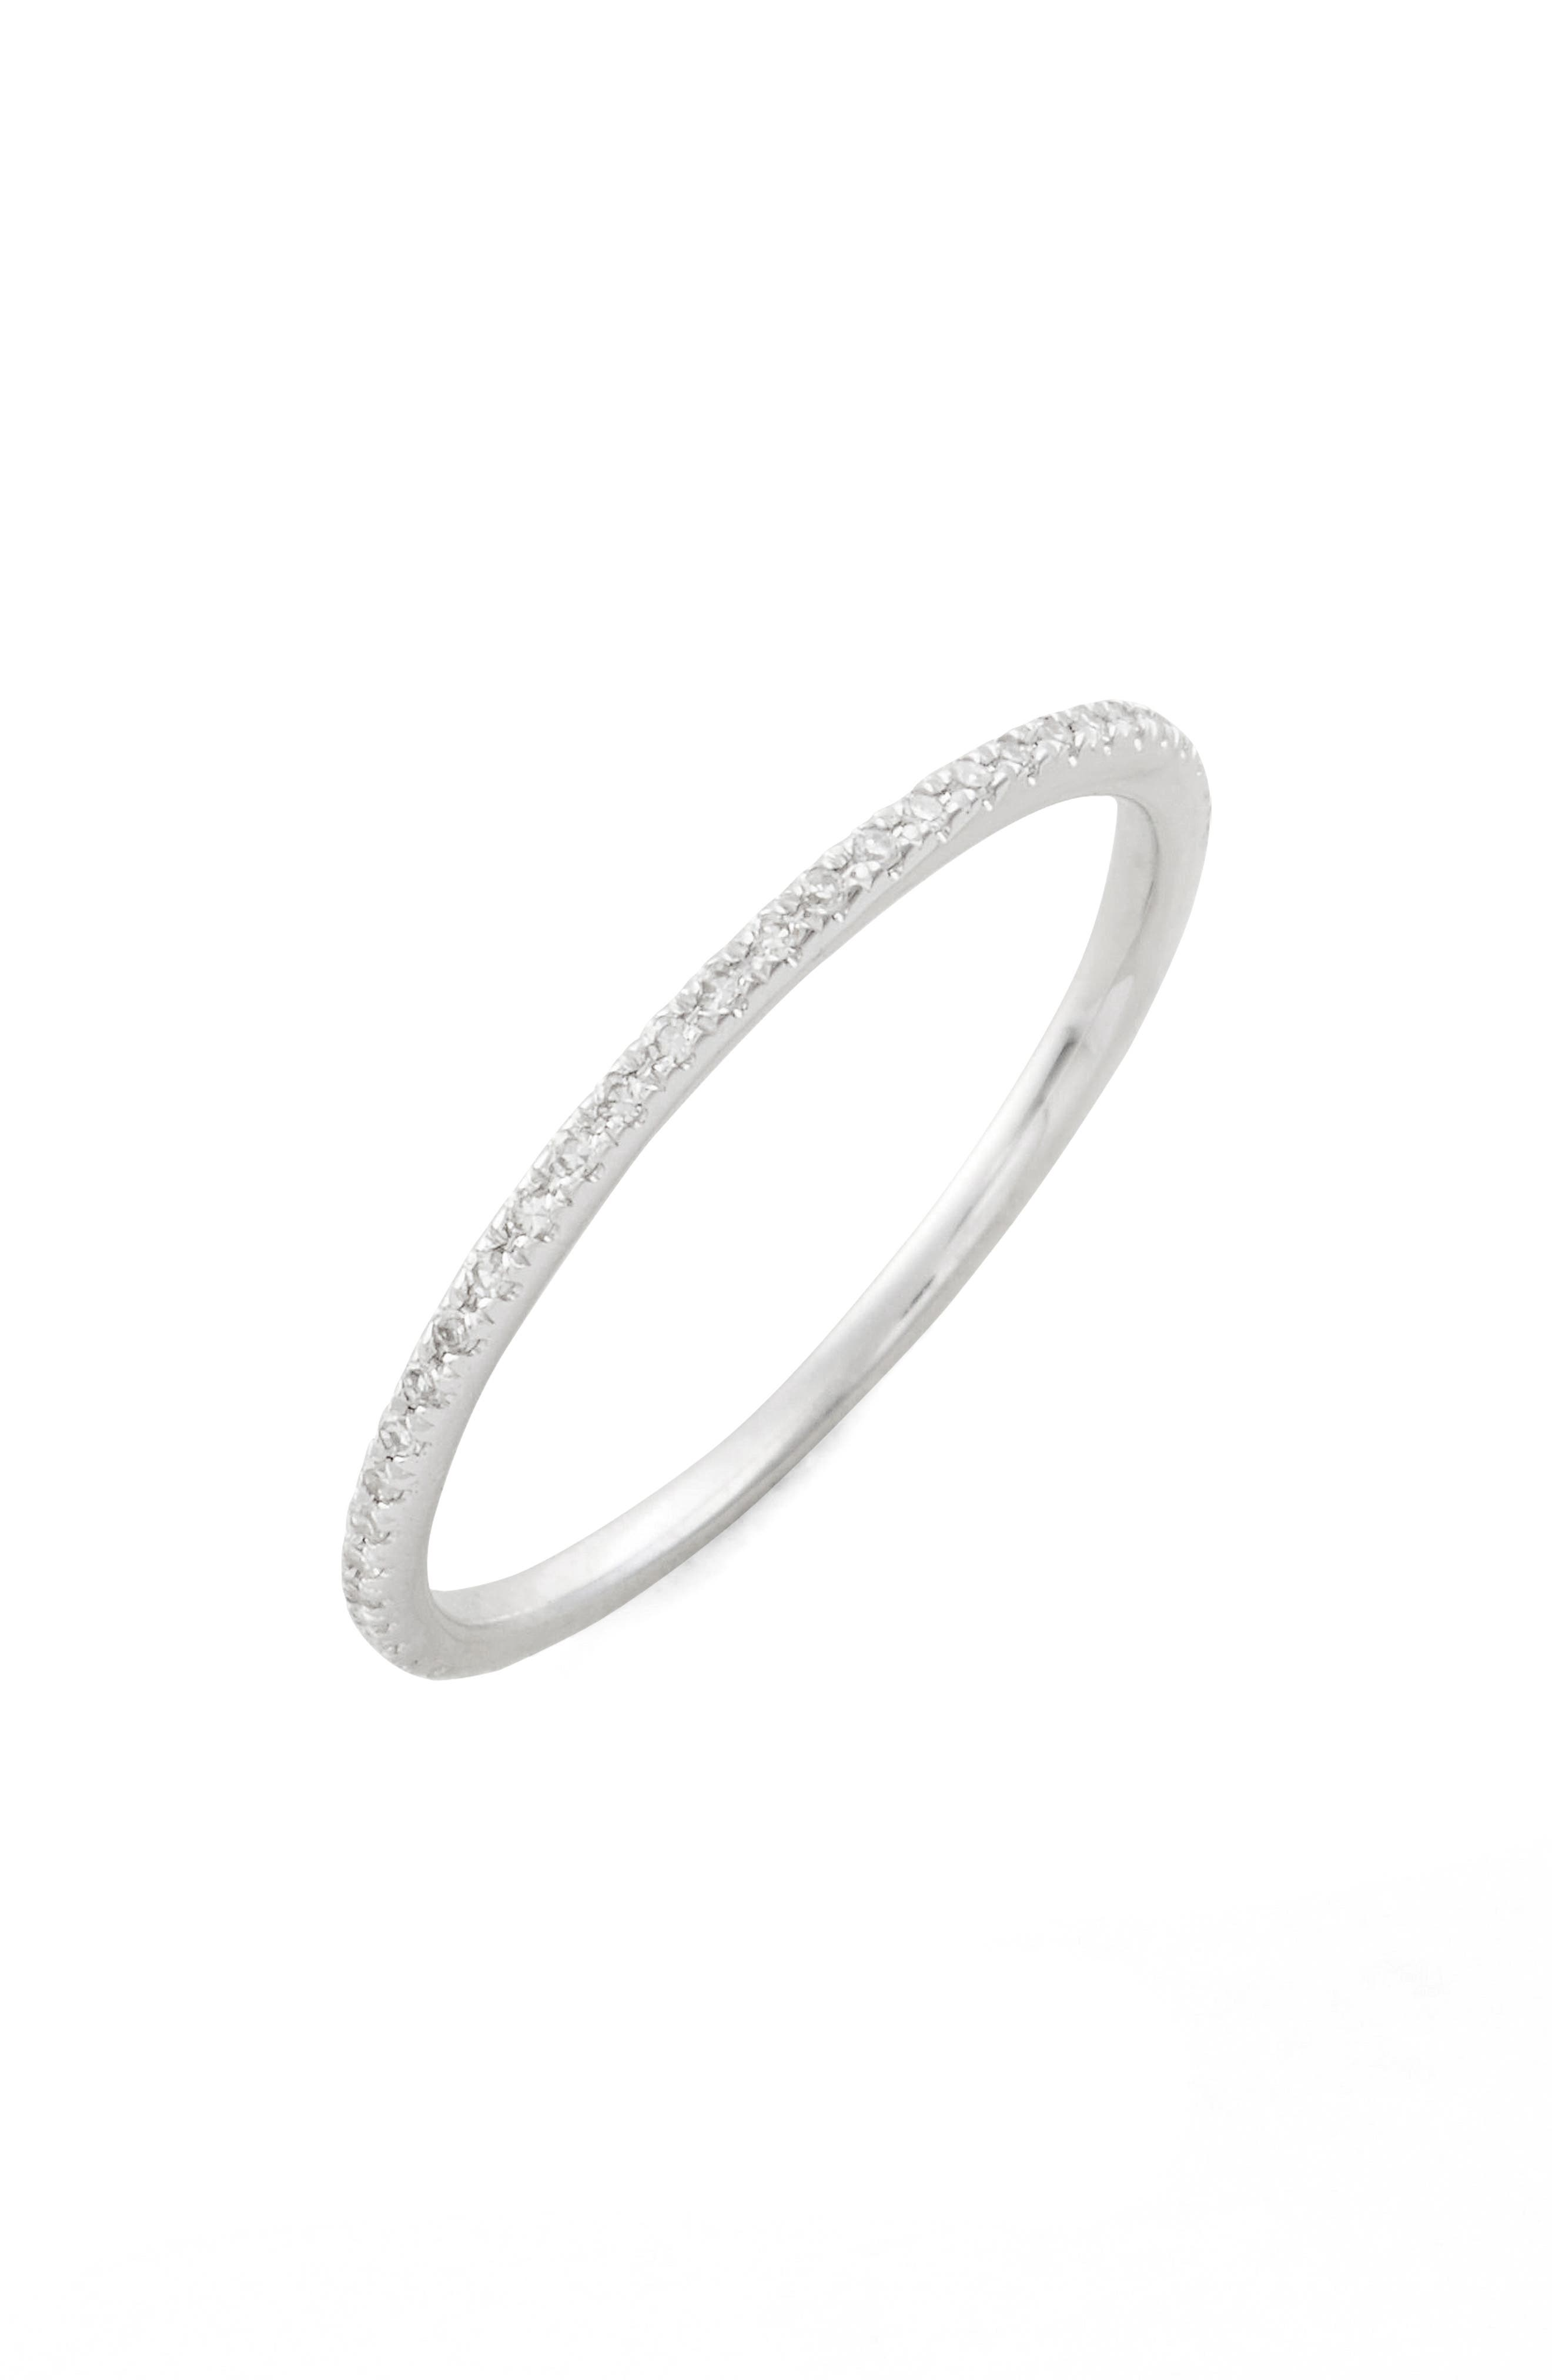 Alternate Image 1 Selected - EF COLLECTION Two-Tone Diamond Stack Ring